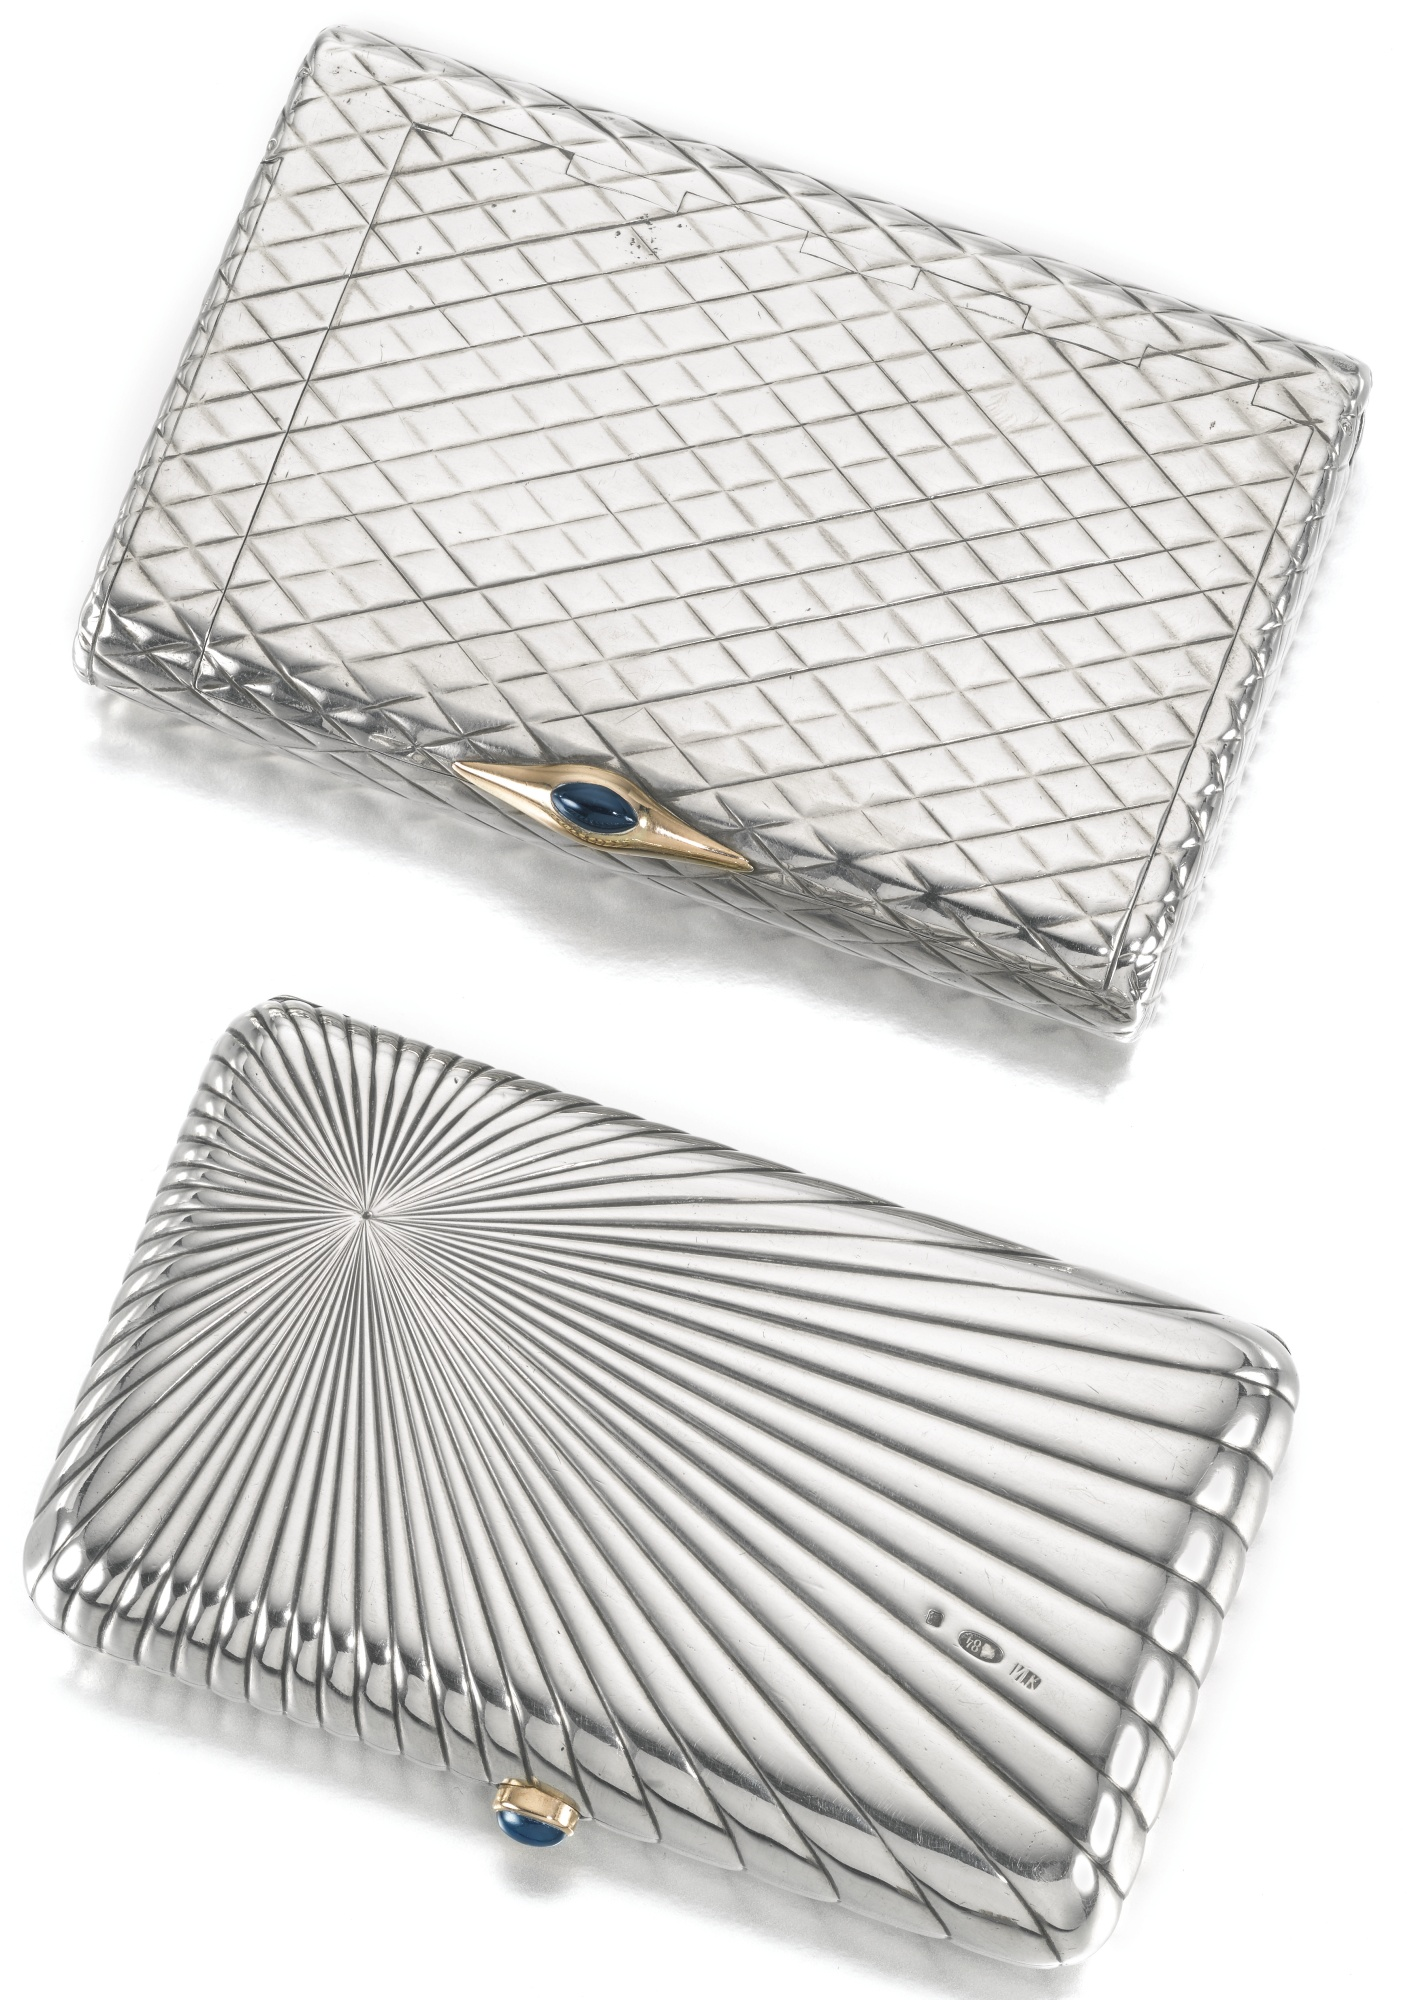 Two silver cigarette cases